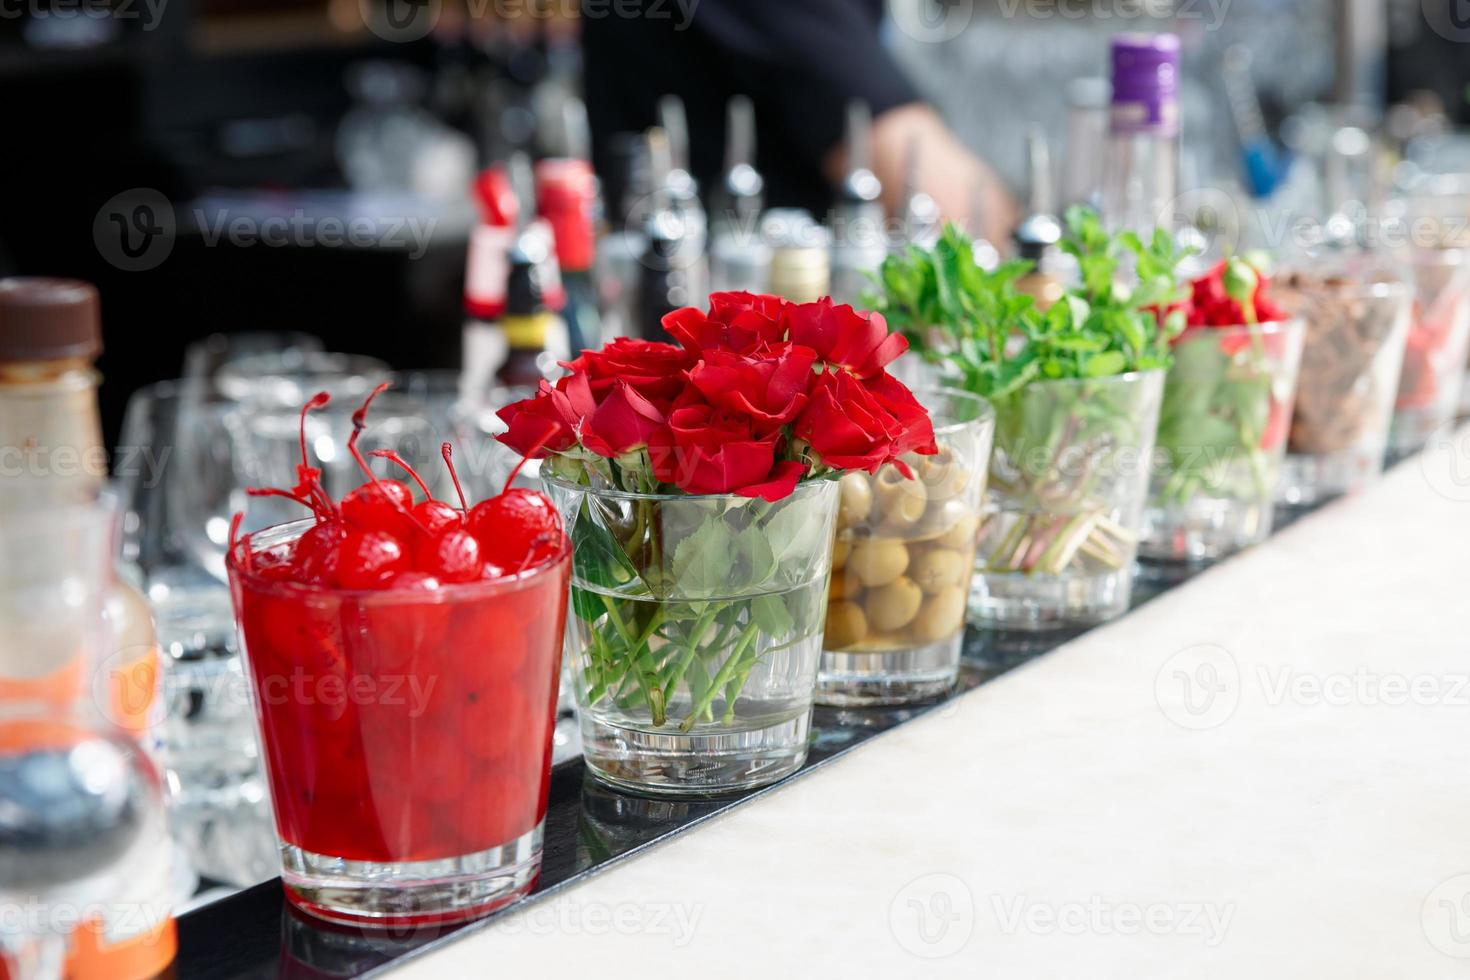 Cherries, herbs and flowers on bar counter photo